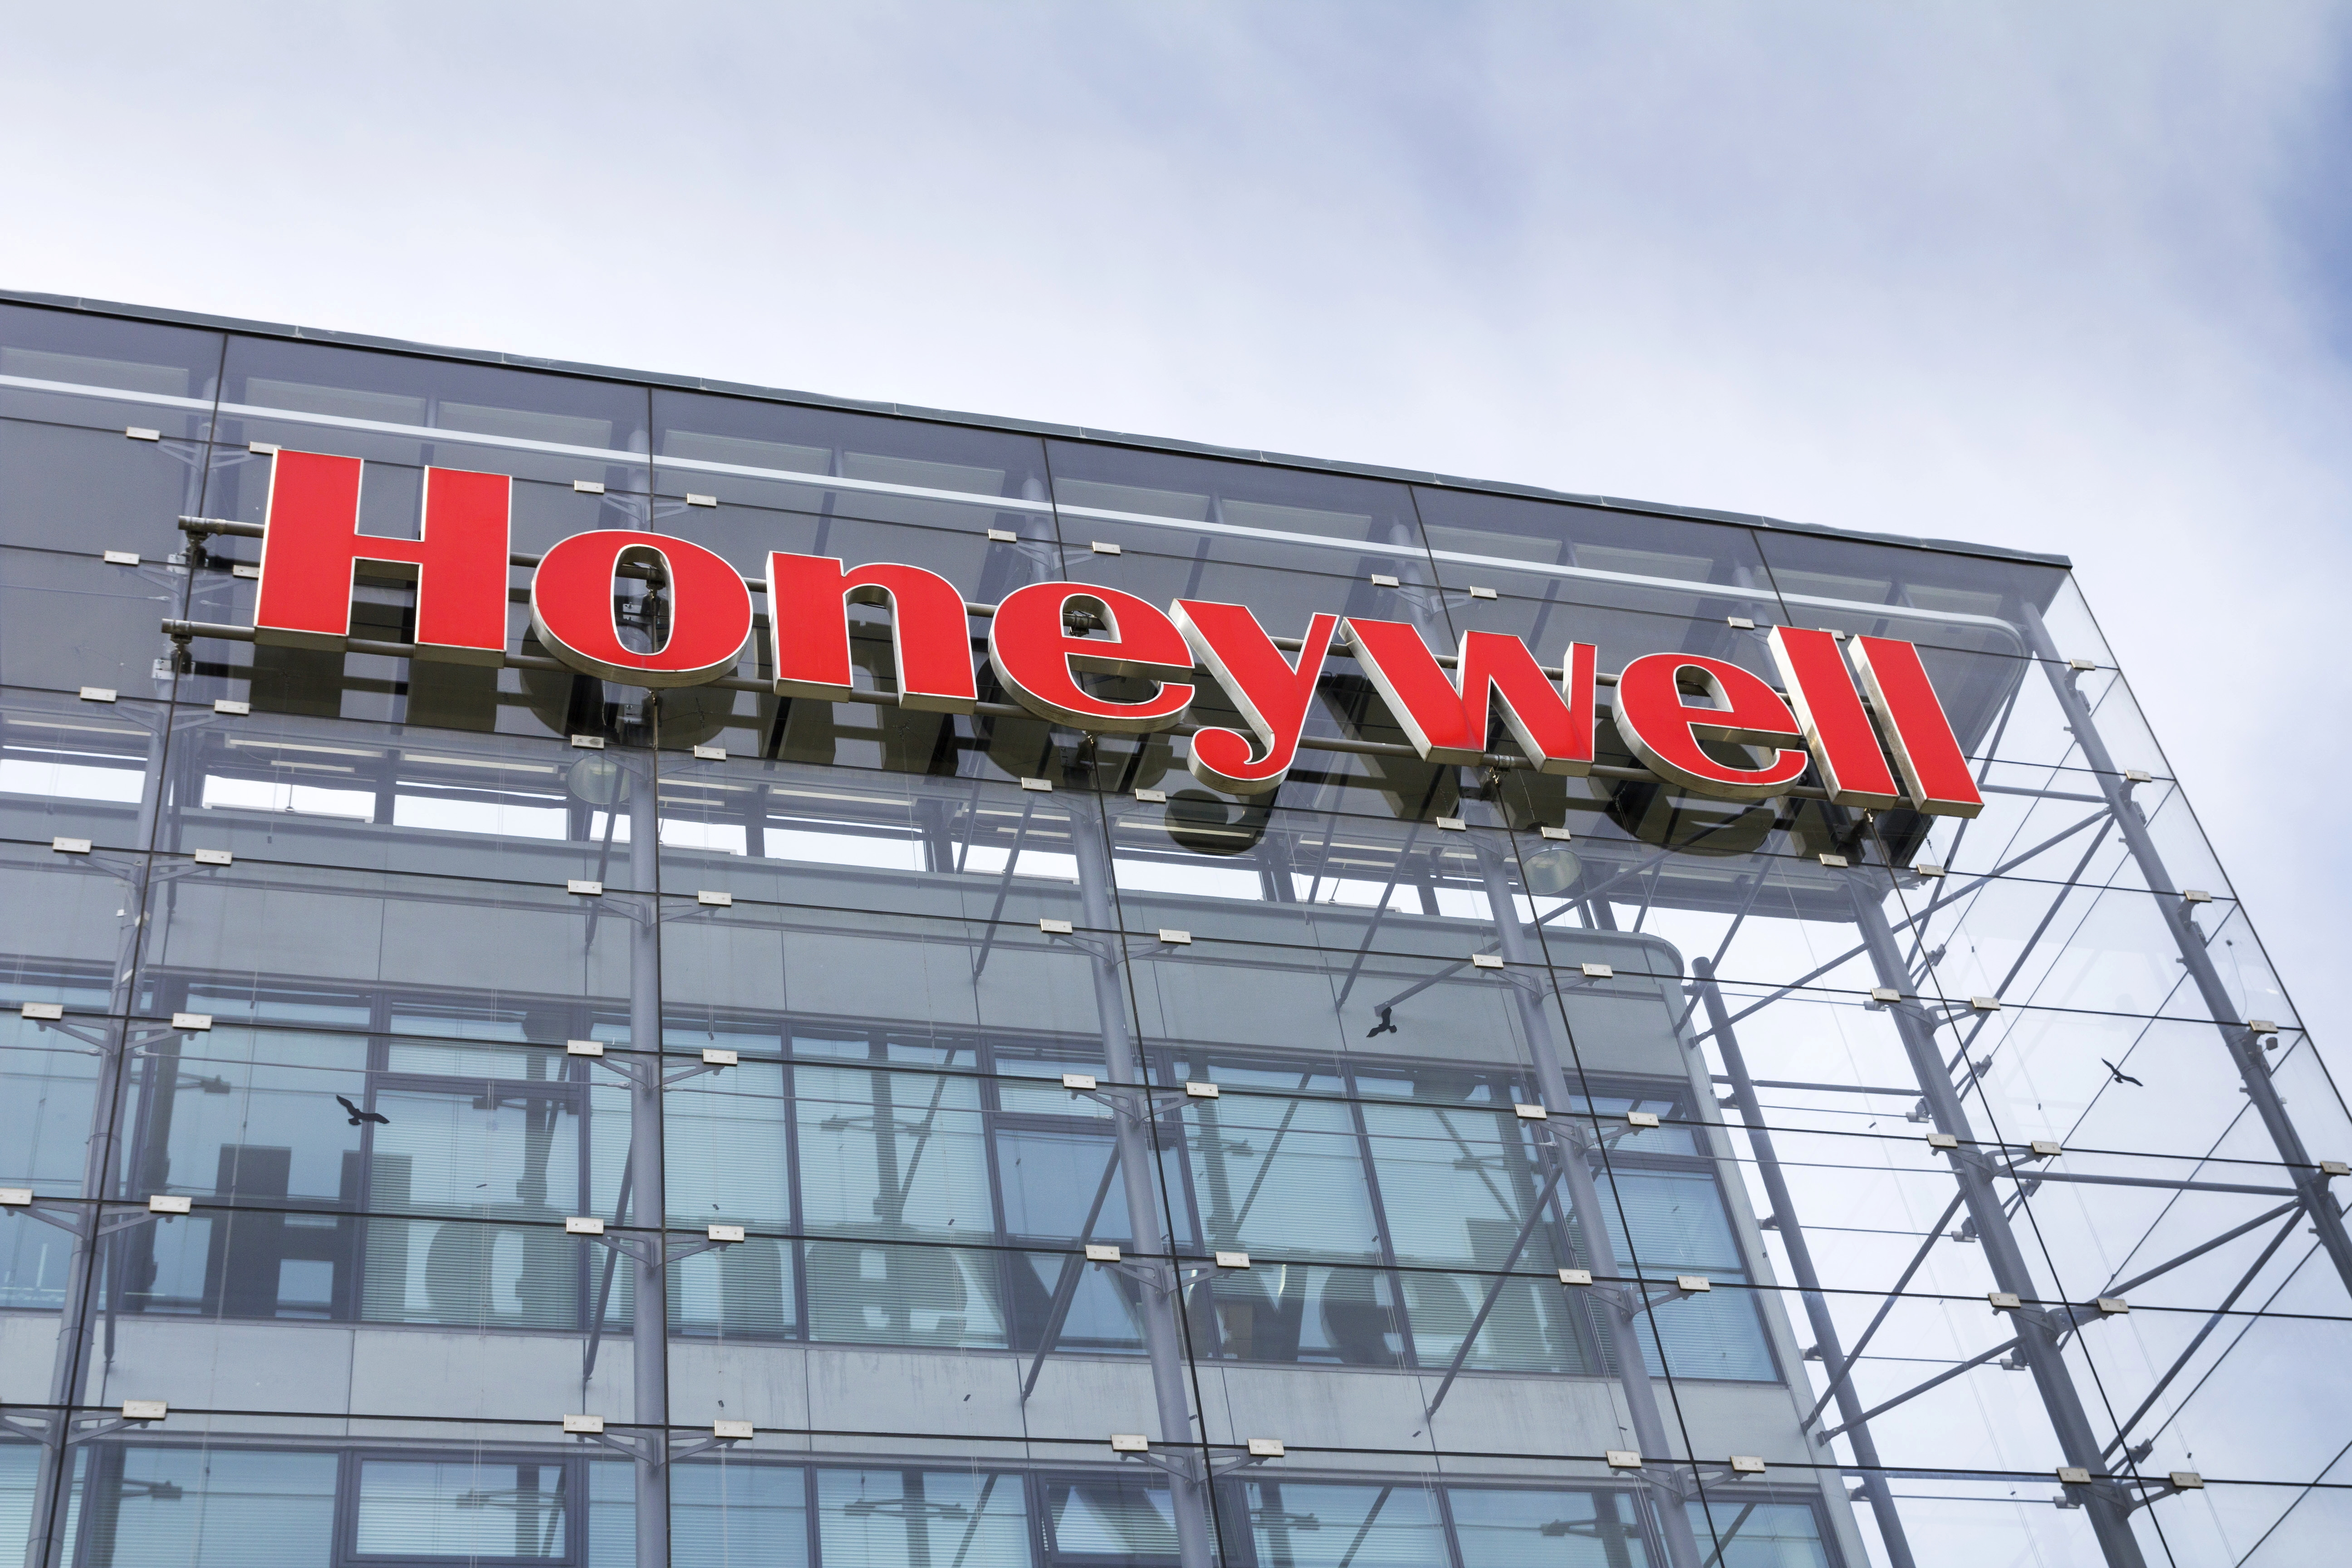 Honeywell partners with SmartWorld to develop smart building